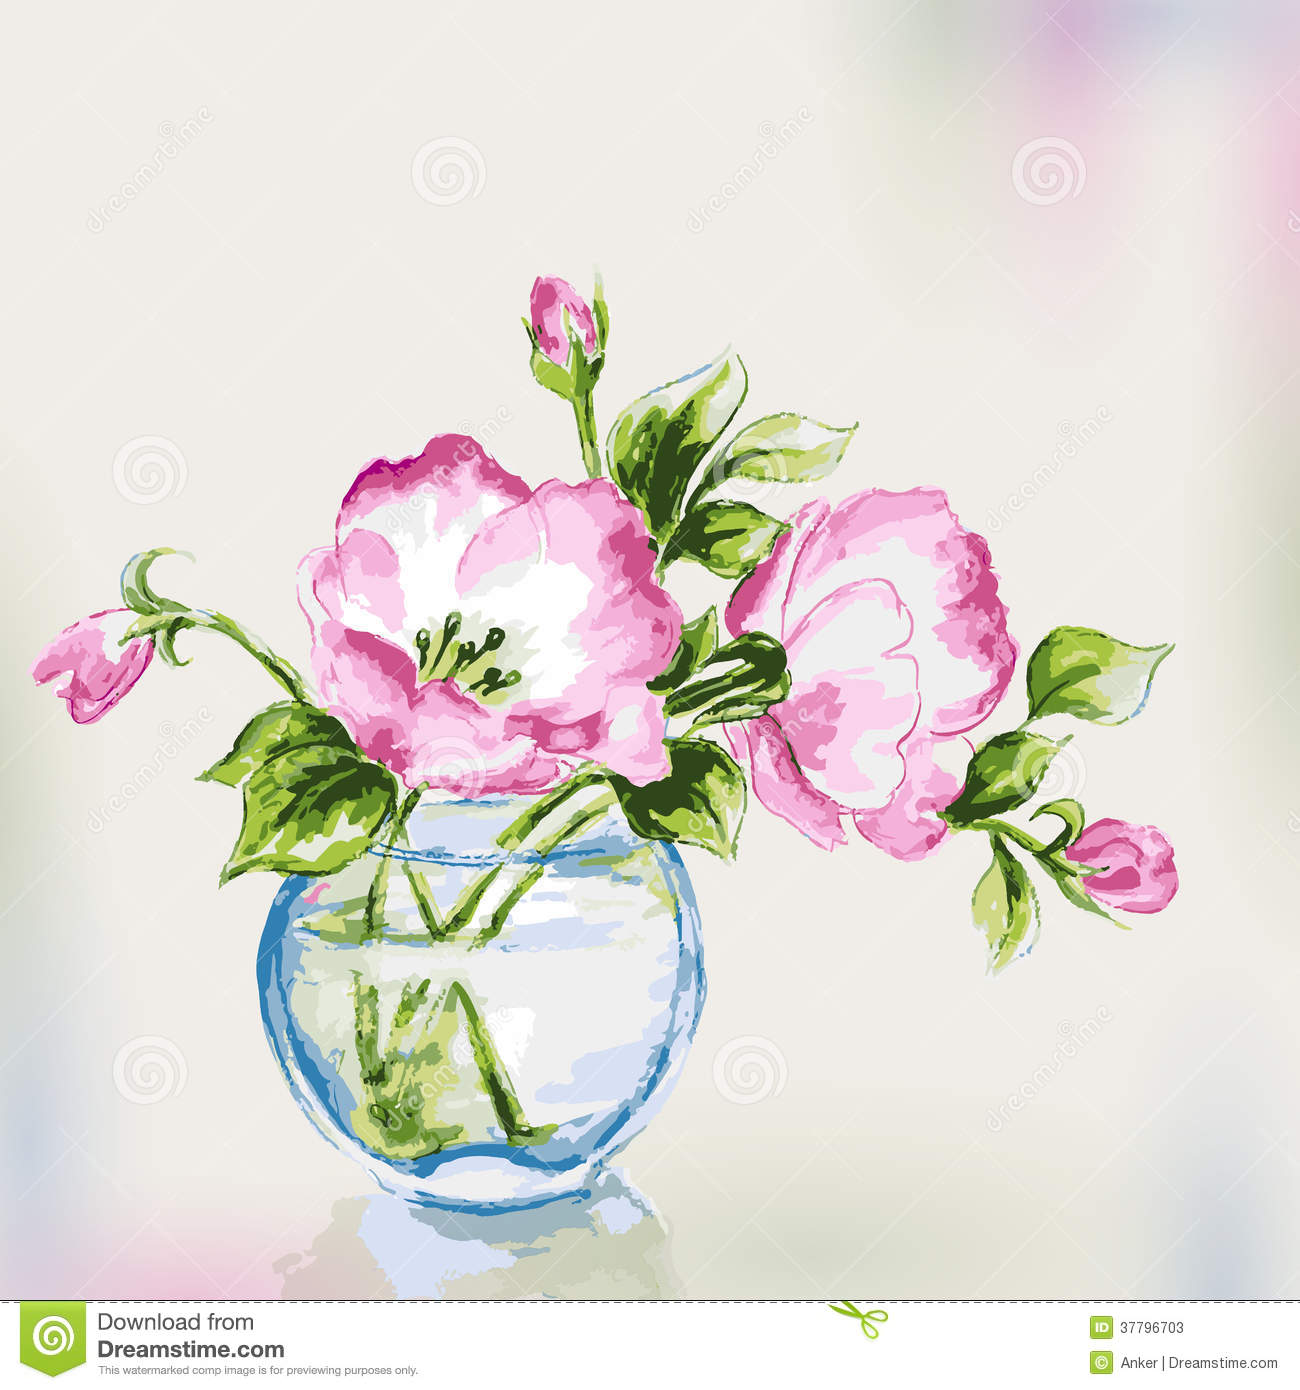 Spring watercolor flowers in vase stock vector for Bouquet de fleurs nature